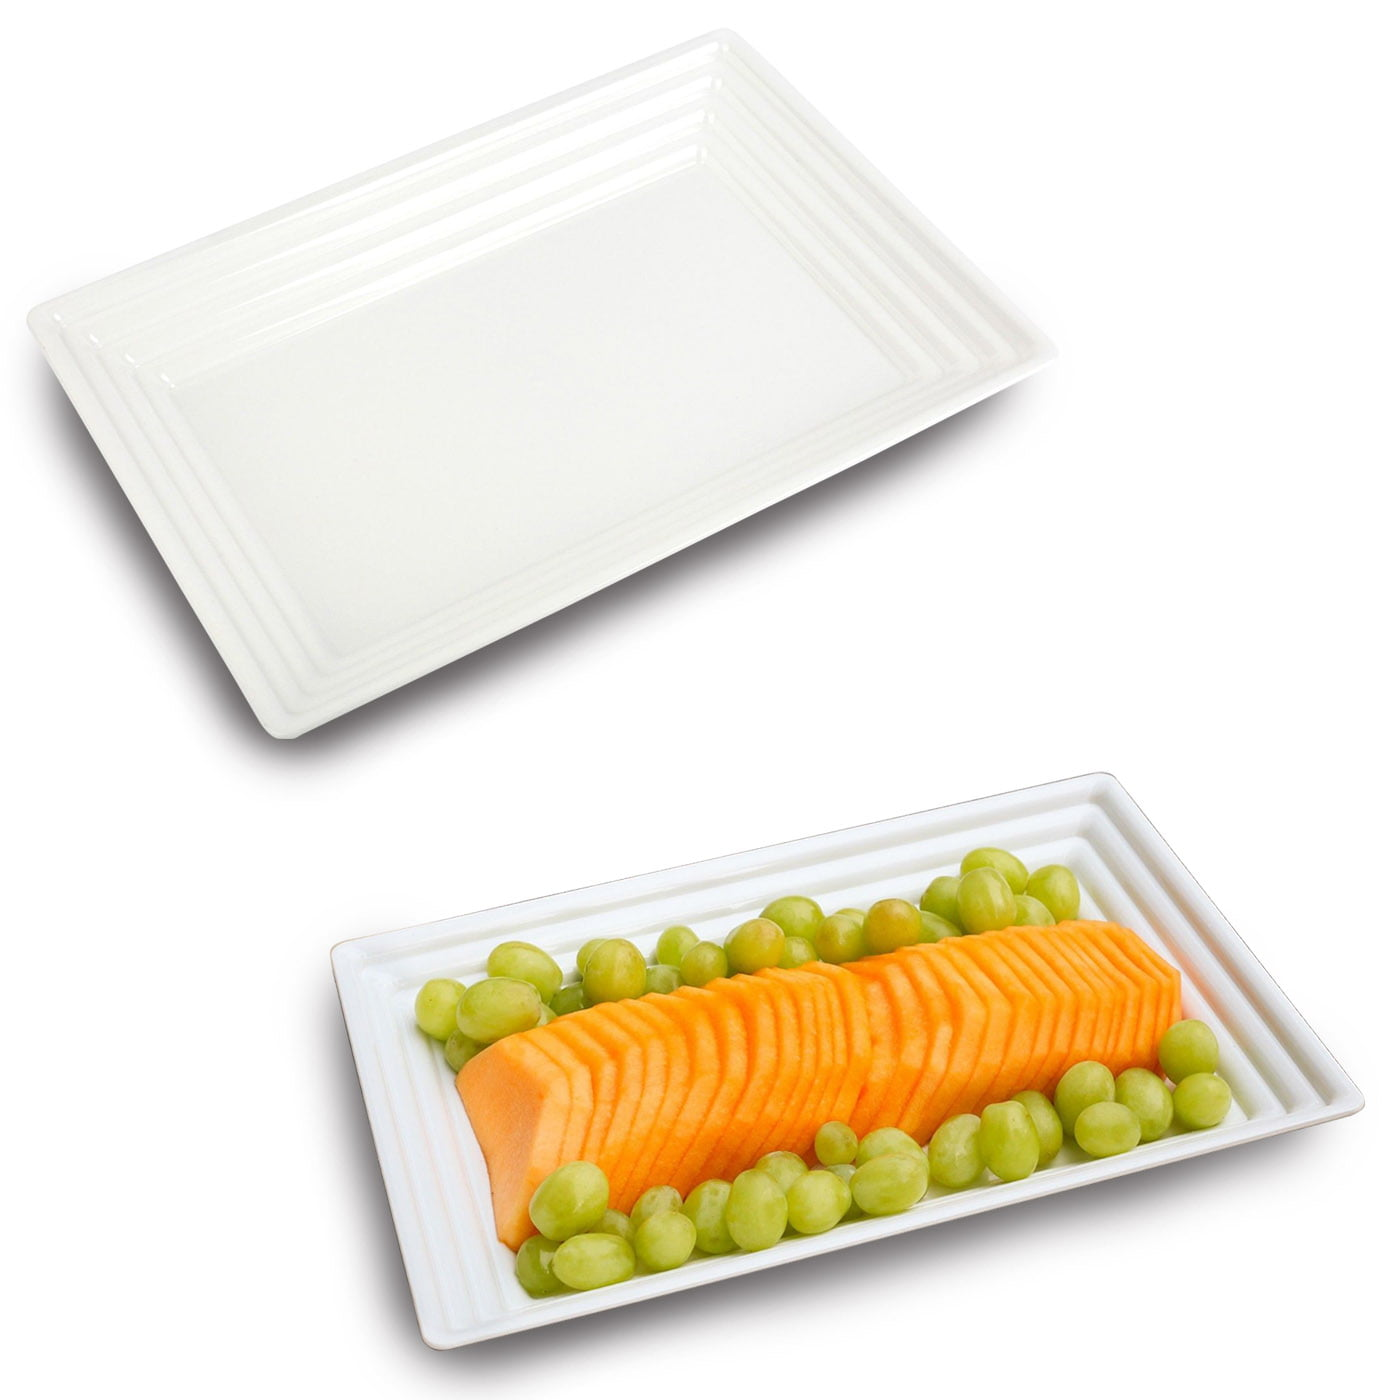 6 Pack Disposable Rectangular tray The Perfect Platters And Trays For Parties Dessert Tray 9 x 13 Plastic Serving Trays Black